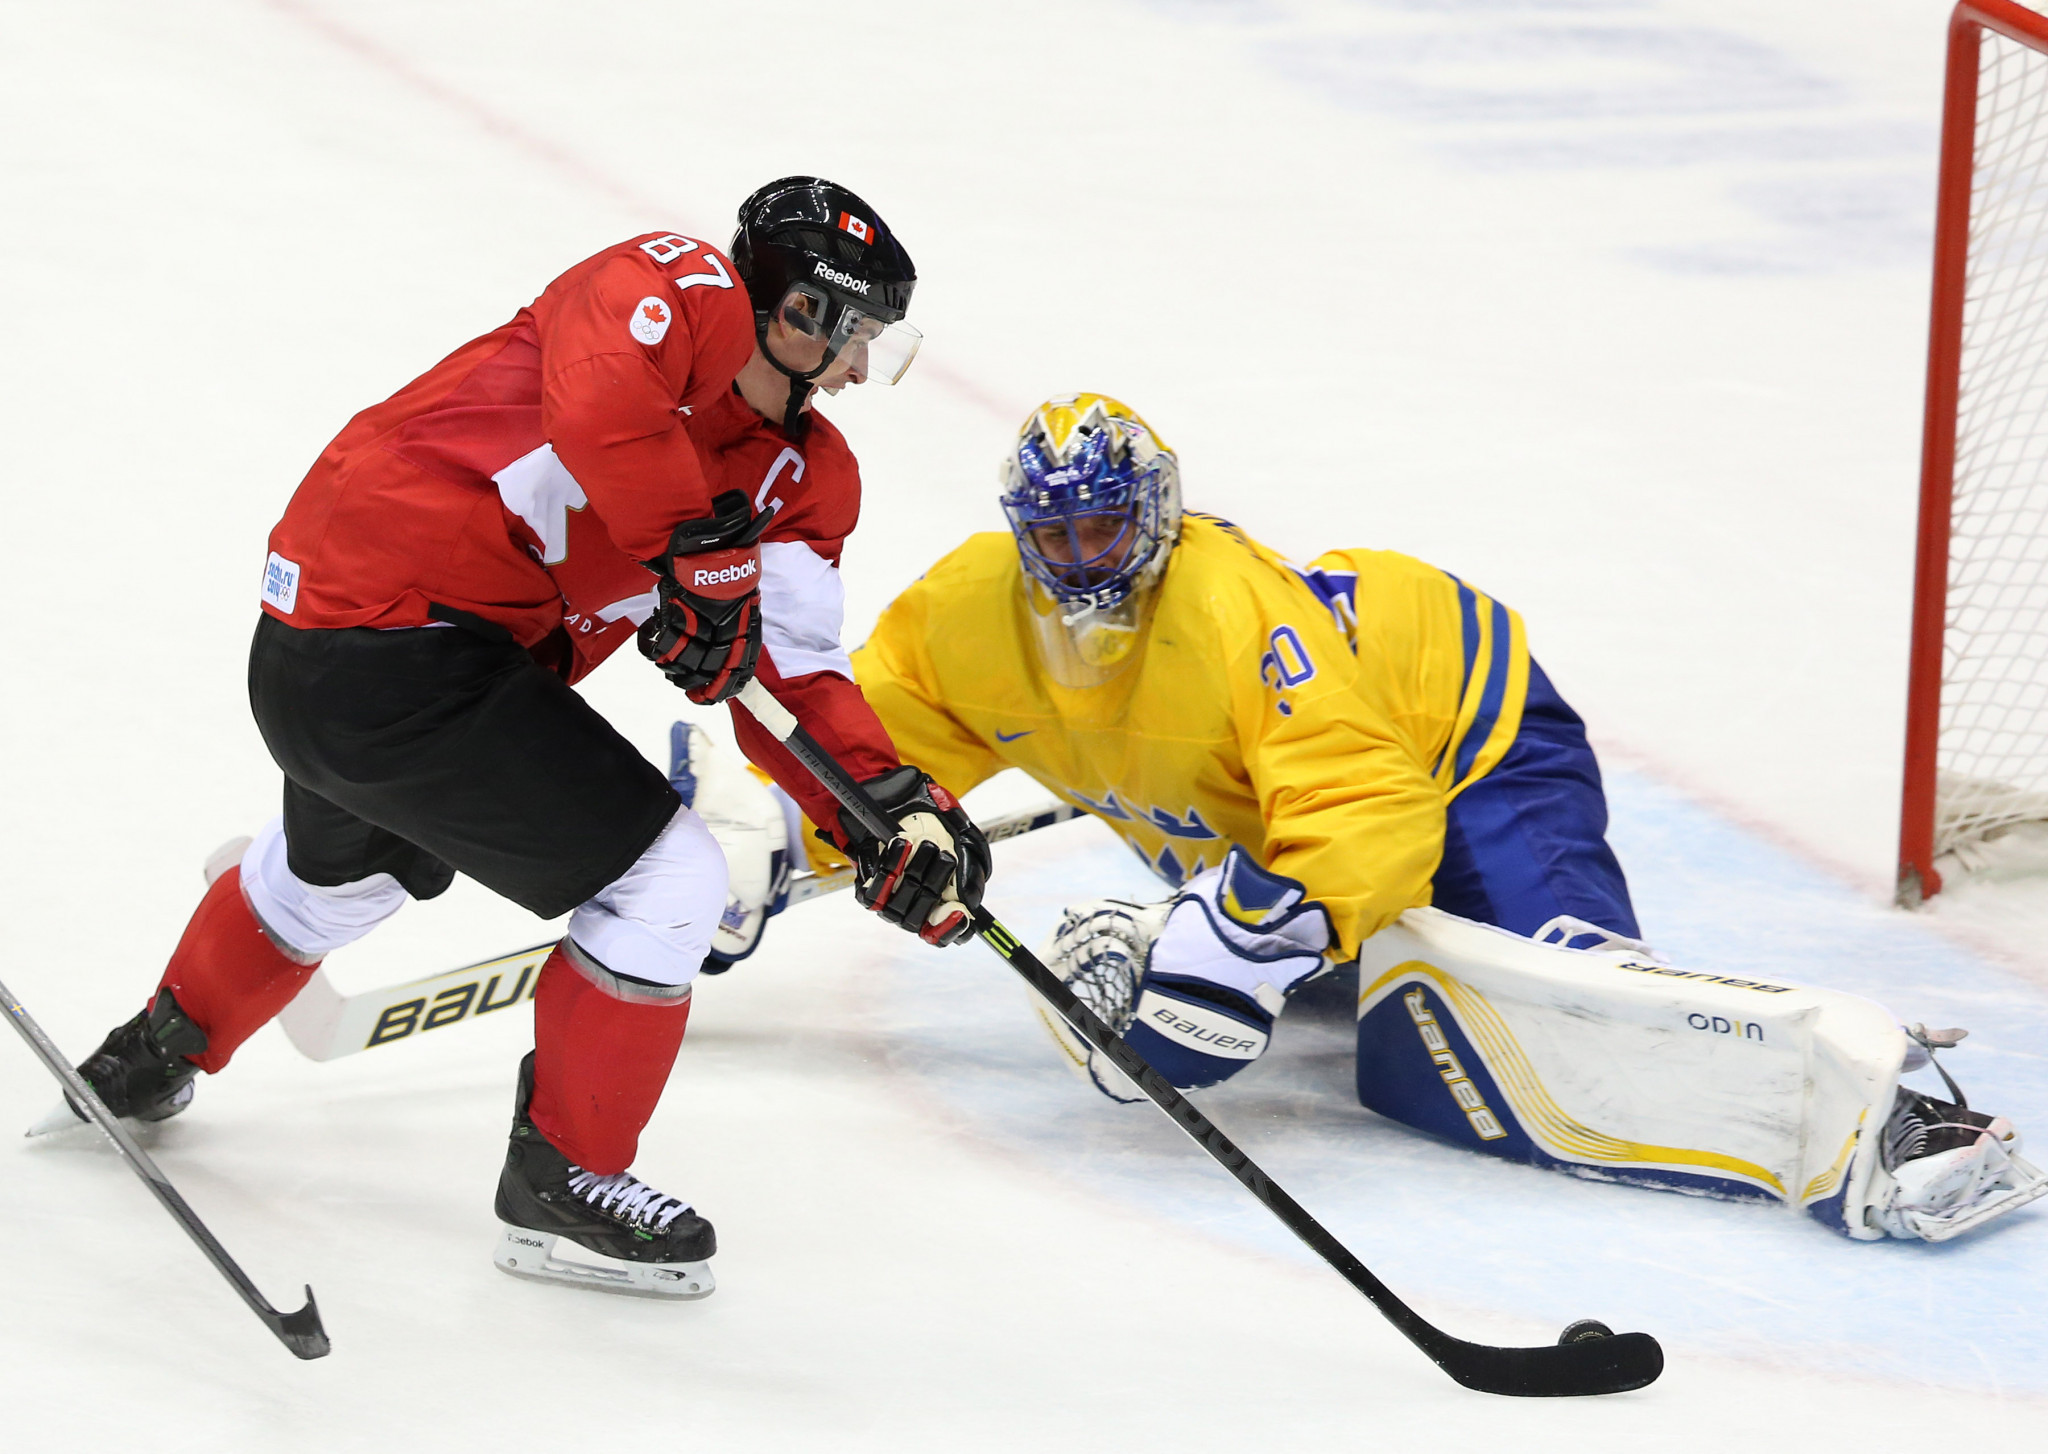 Canada are the reigning Olympic champions, having won at Vancouver 2010 and Sochi 2014 ©Getty Images